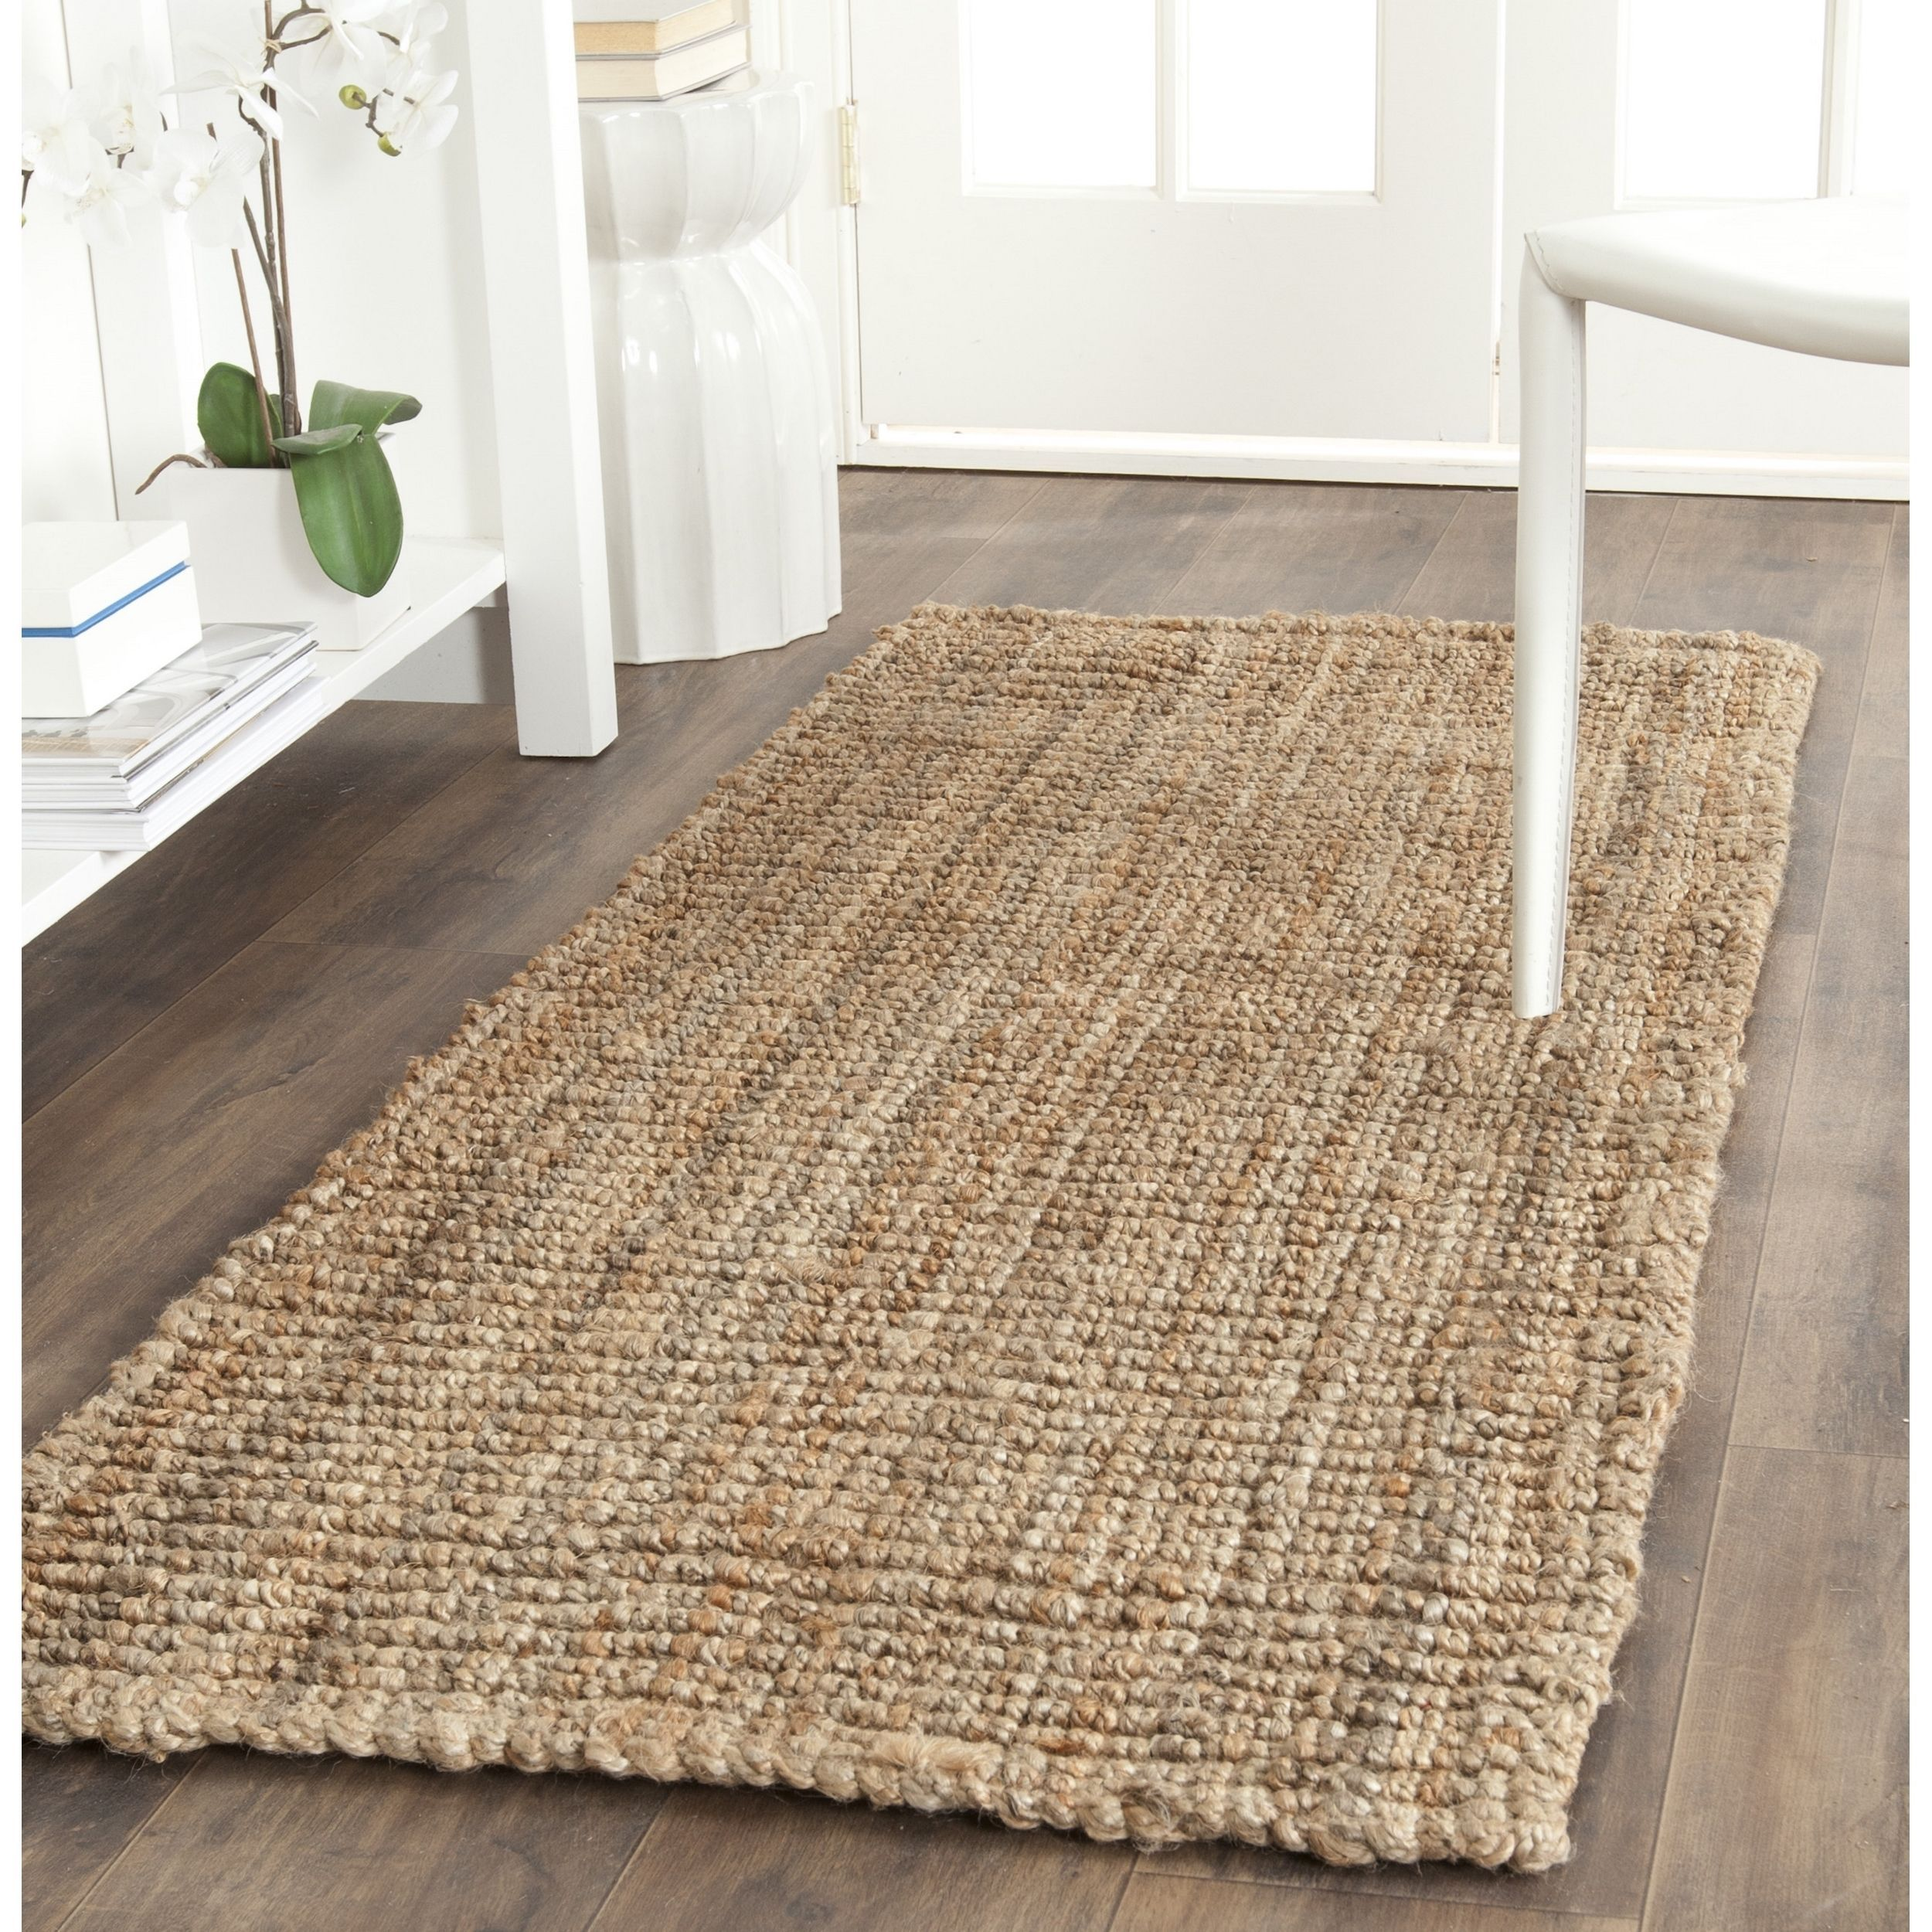 farmhouse favorite sisal rug city loop chunky from rugs room kitchen time dining usa all my maui makoever chunk jute